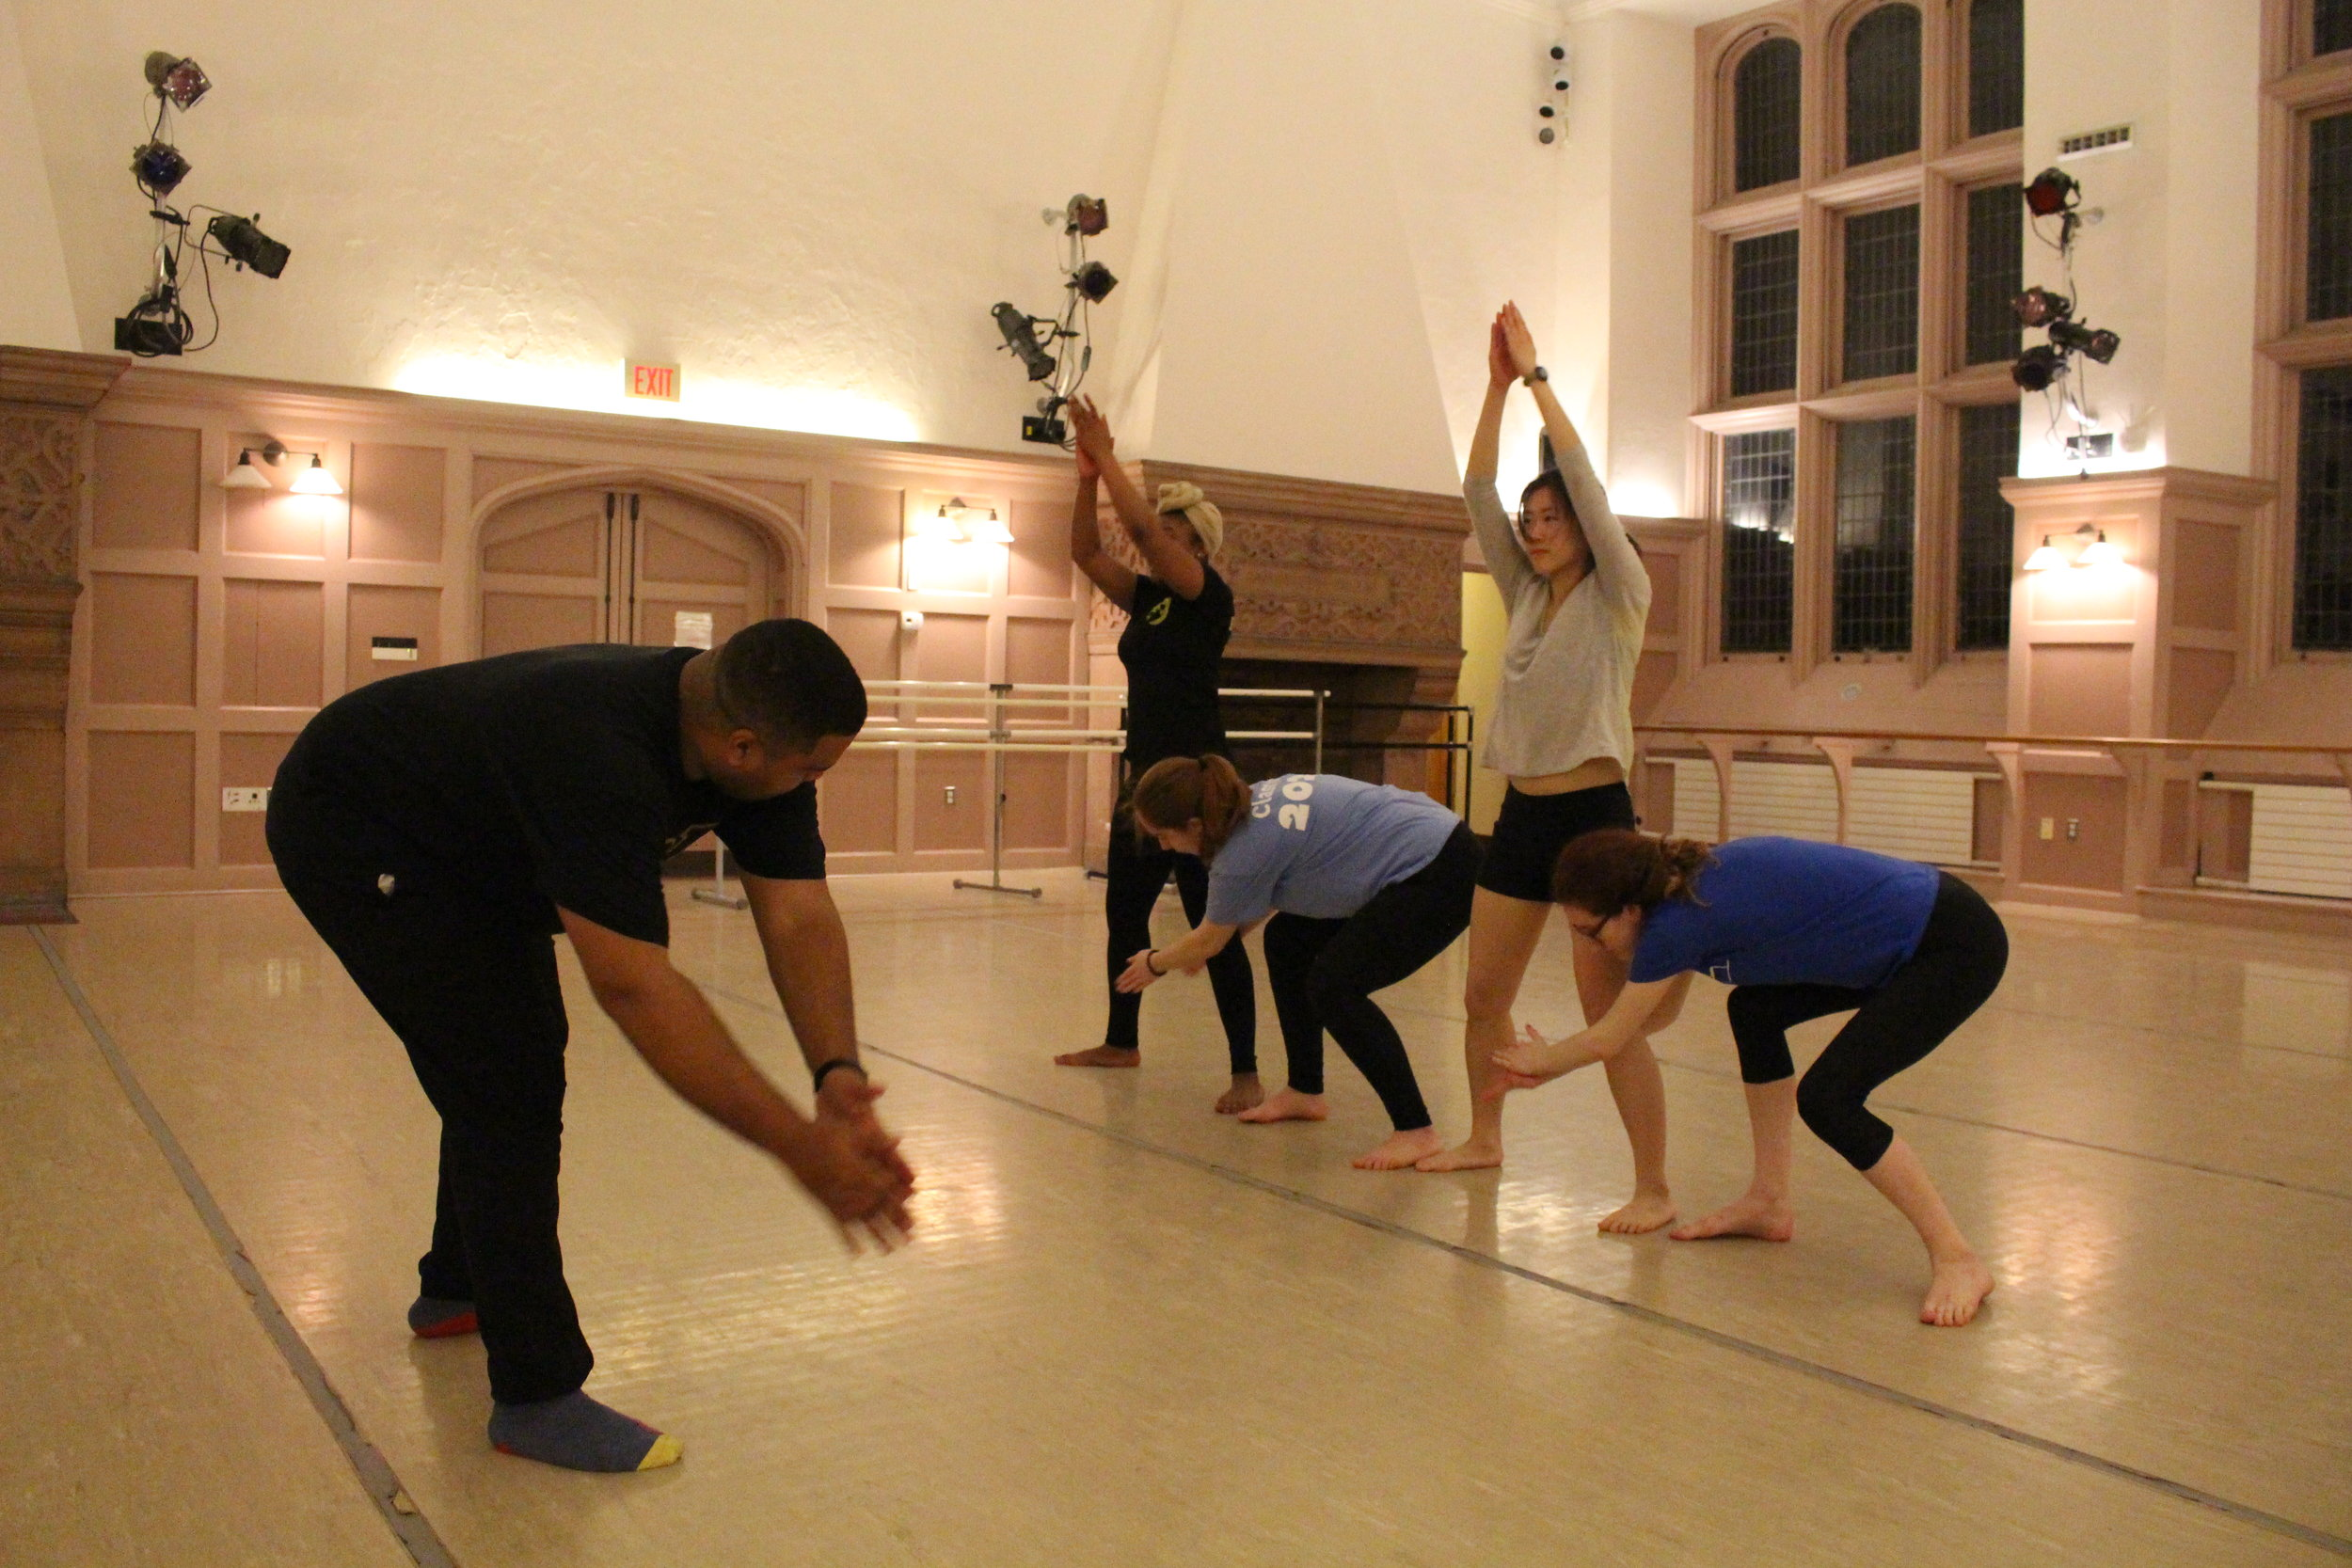 Gary taught the dance students two multiple-part steps and one transition step to be performed at their culminating end-of-year program.